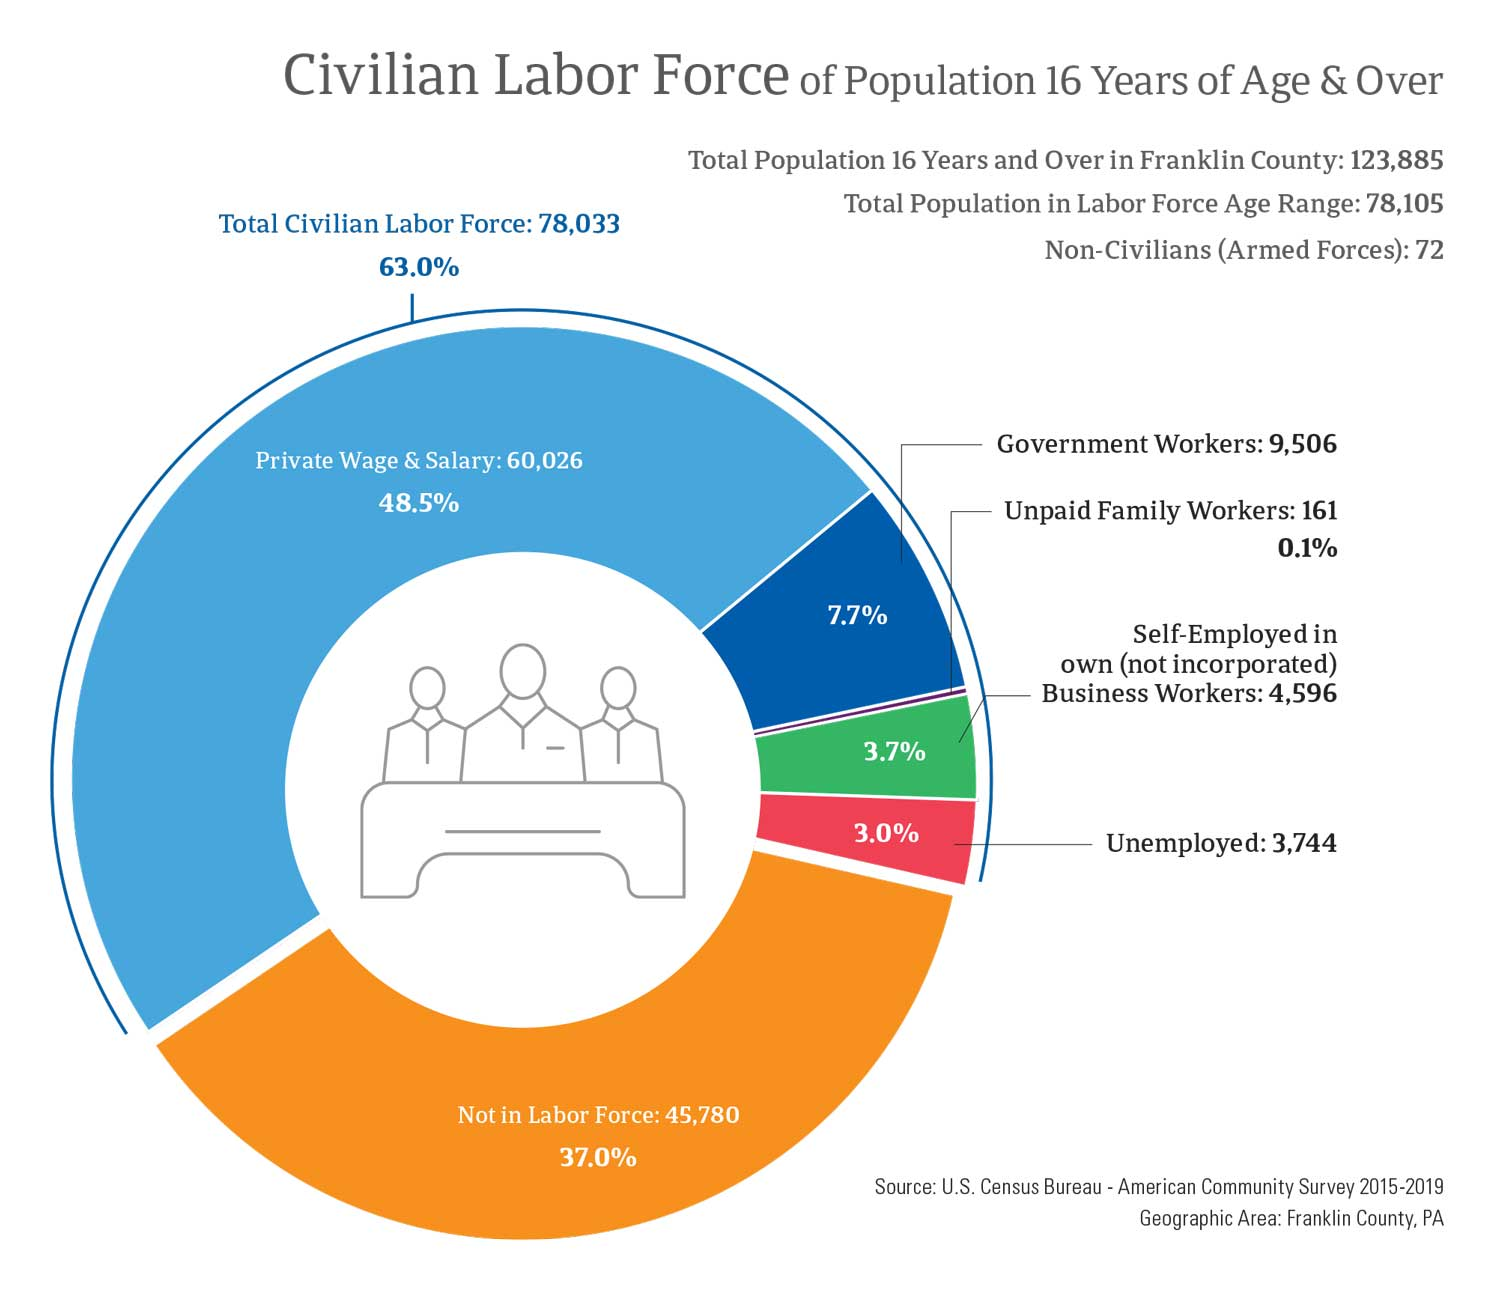 Civilian Labor Force of Population 16 Years of Age & Over